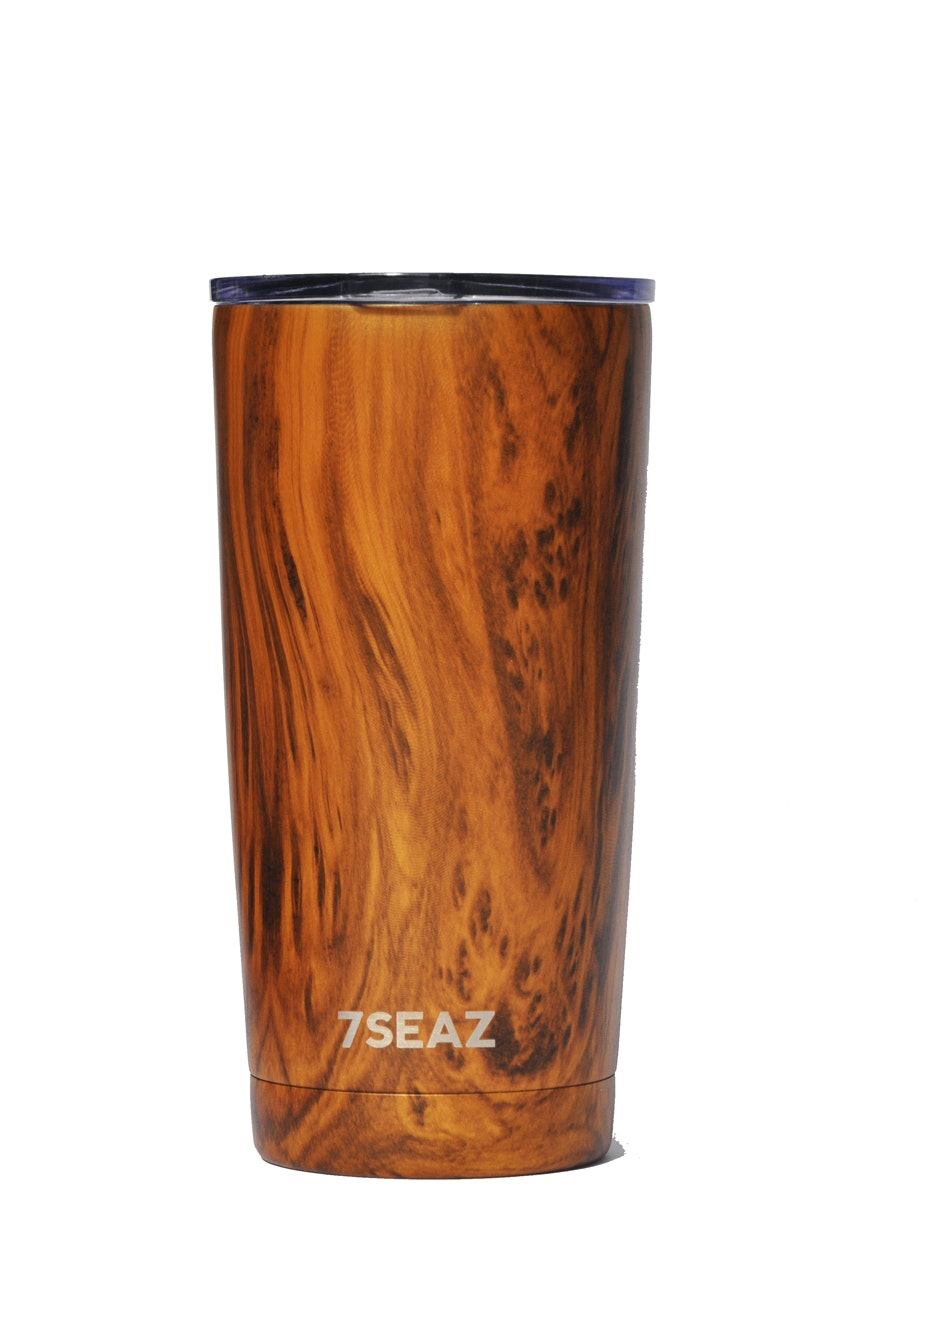 BBBYO - BBBYO coffee fix cup - Woodgrain